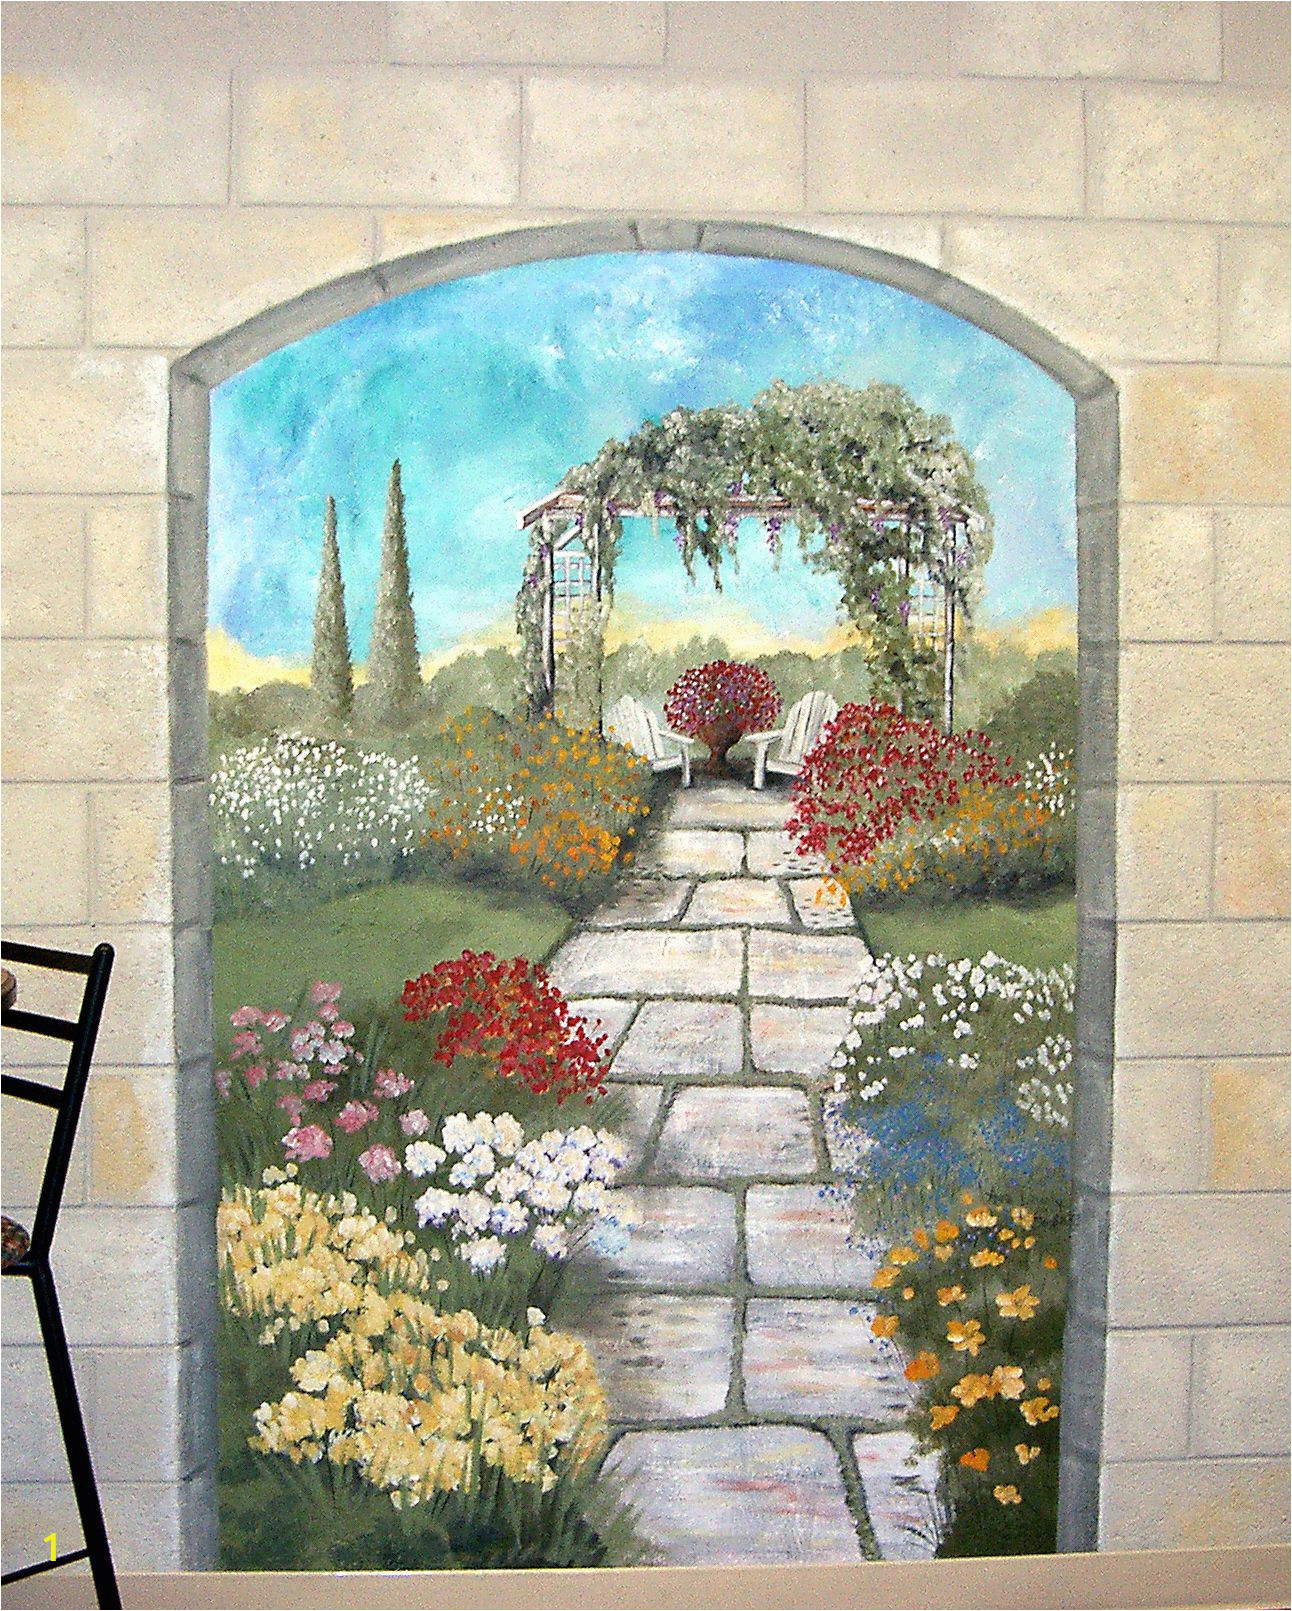 Mural Painting On Concrete Wall Garden Mural On A Cement Block Wall Colorful Flower Garden